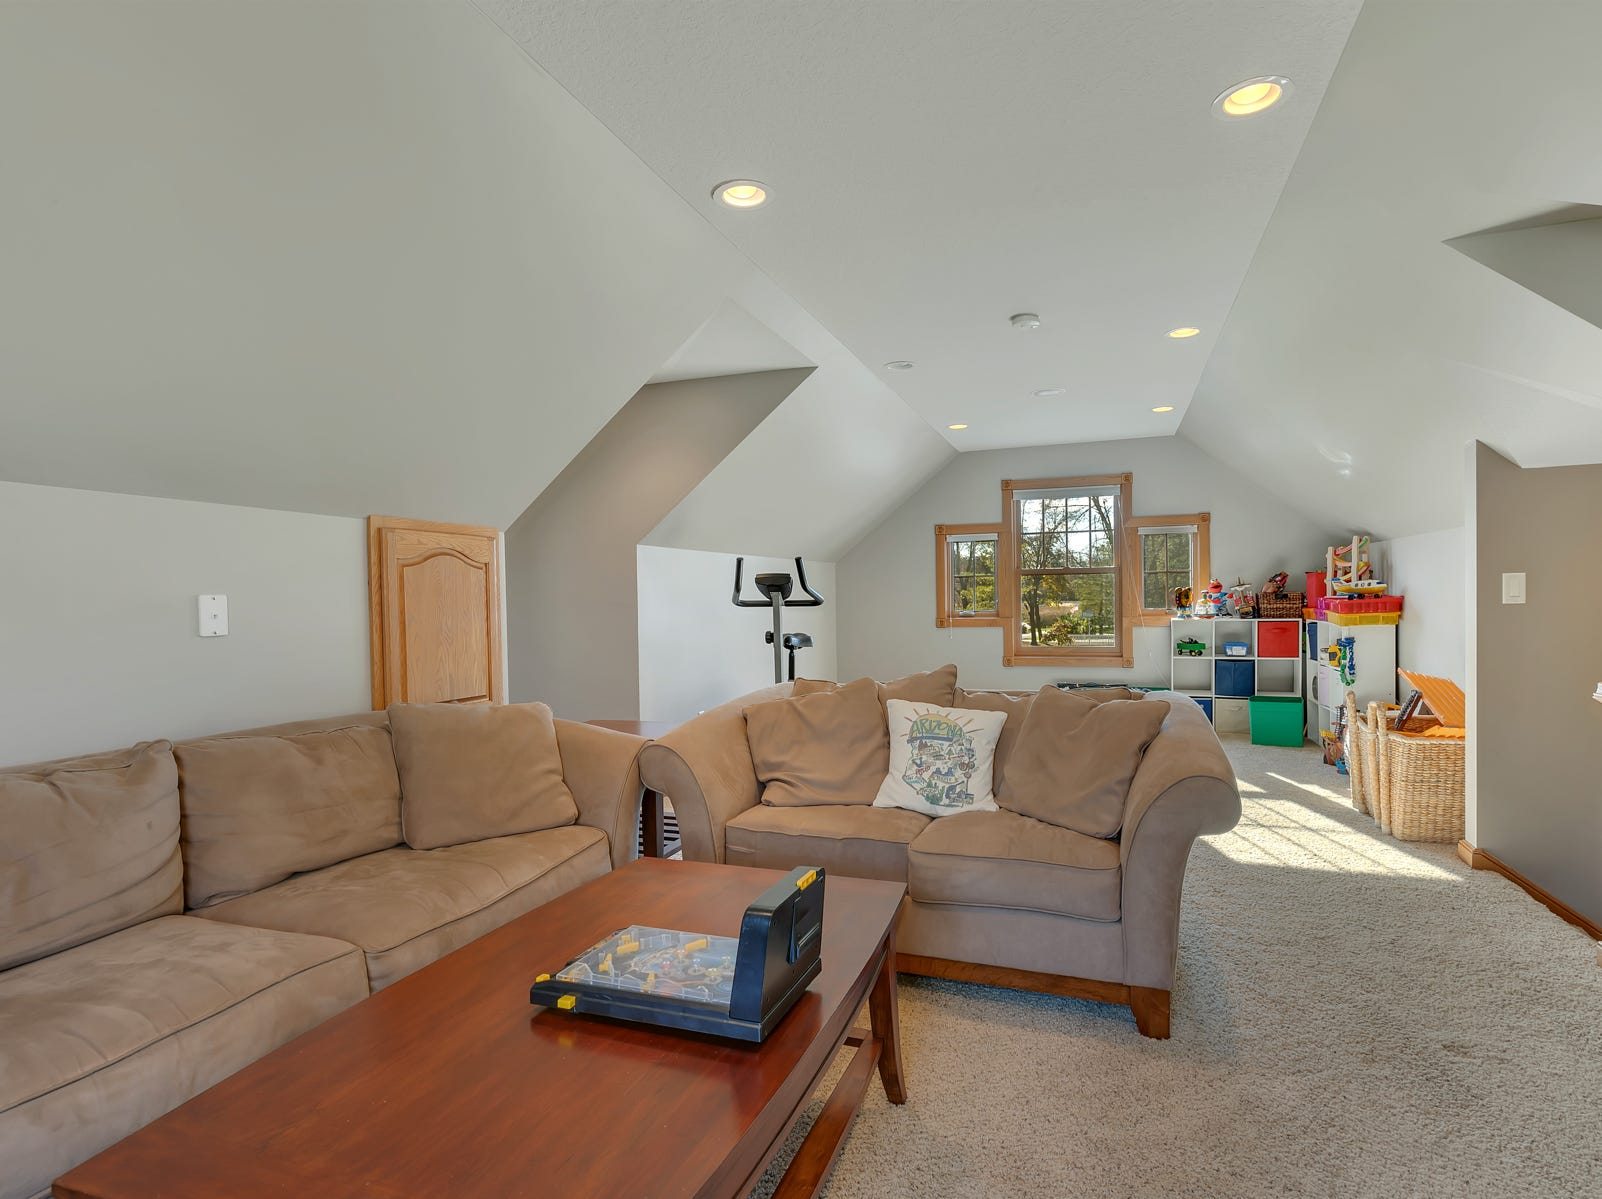 The upper floor has a completely separate section above the garage; a versatile long room that would make for an excellent family room, kids area or guest quarters.